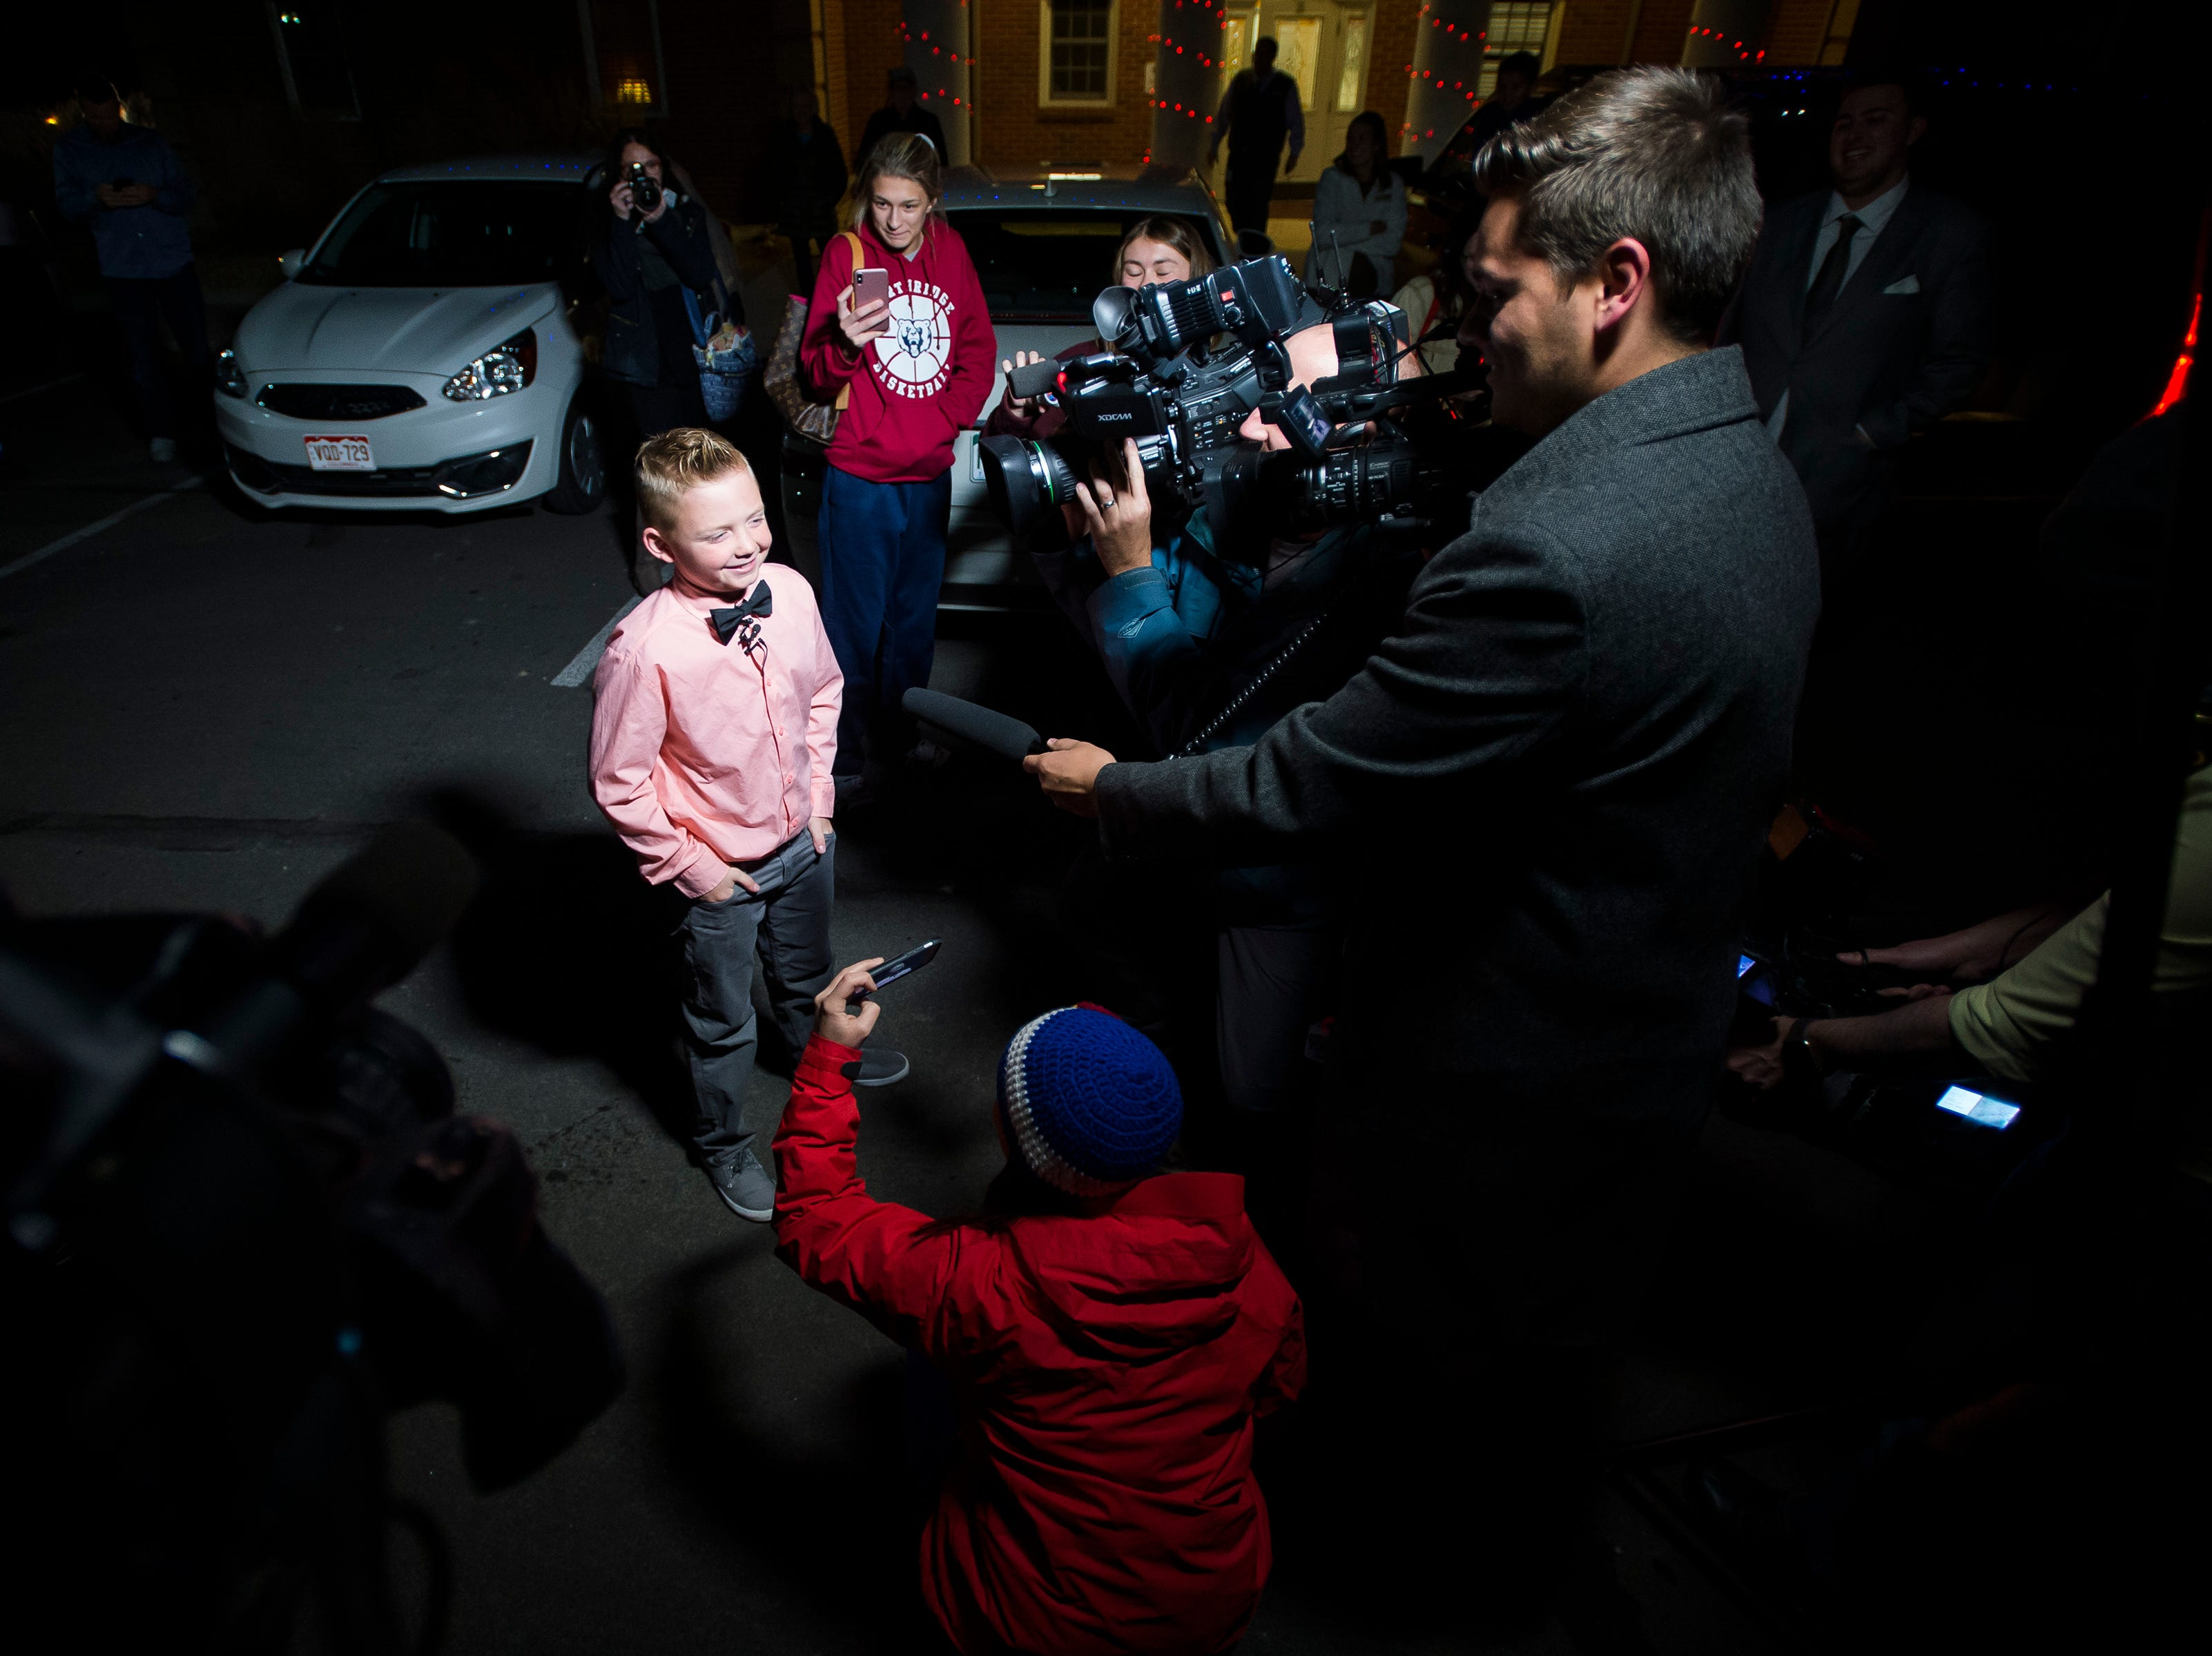 Range View Elementary School third grader Dane Best is interviewed by various media outlets after throwing the first legal snowball in the parking lot of the Town Hall after Dane presenting his argument to the town board trustees to change a law in Severance that bans snowball fights on Monday, Dec. 3, 2018, at the Town Hall in Severance, Colo. The board voted unanimously to approve the law change.